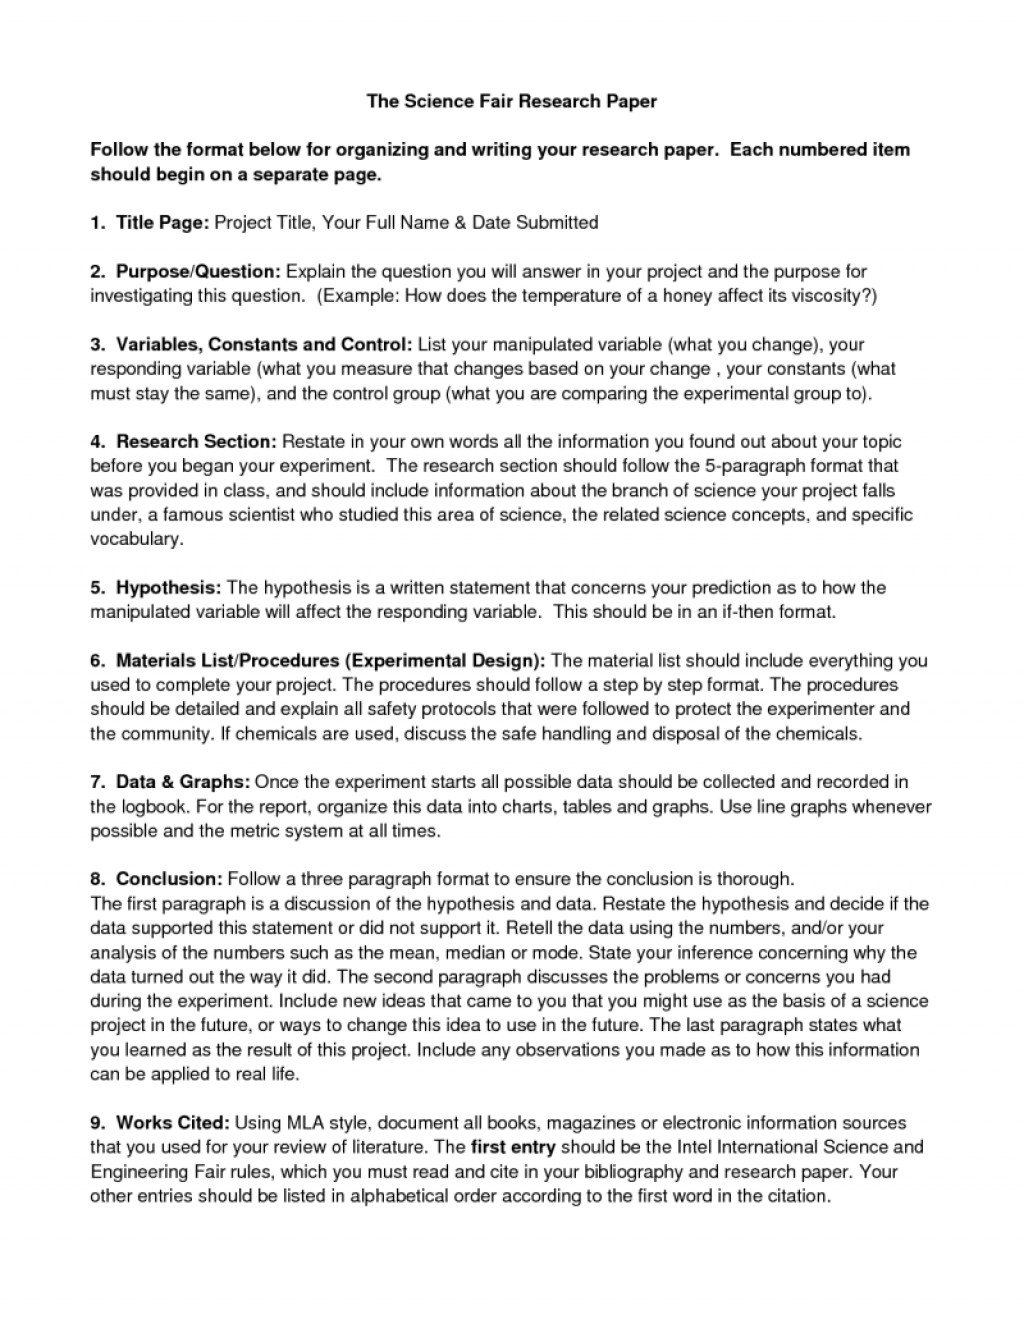 002 Research Paper Ideas Of Science Fair Outline Unique Political Guidelines Guidelinesresize8001035 Health Topics To Write Breathtaking A On Large